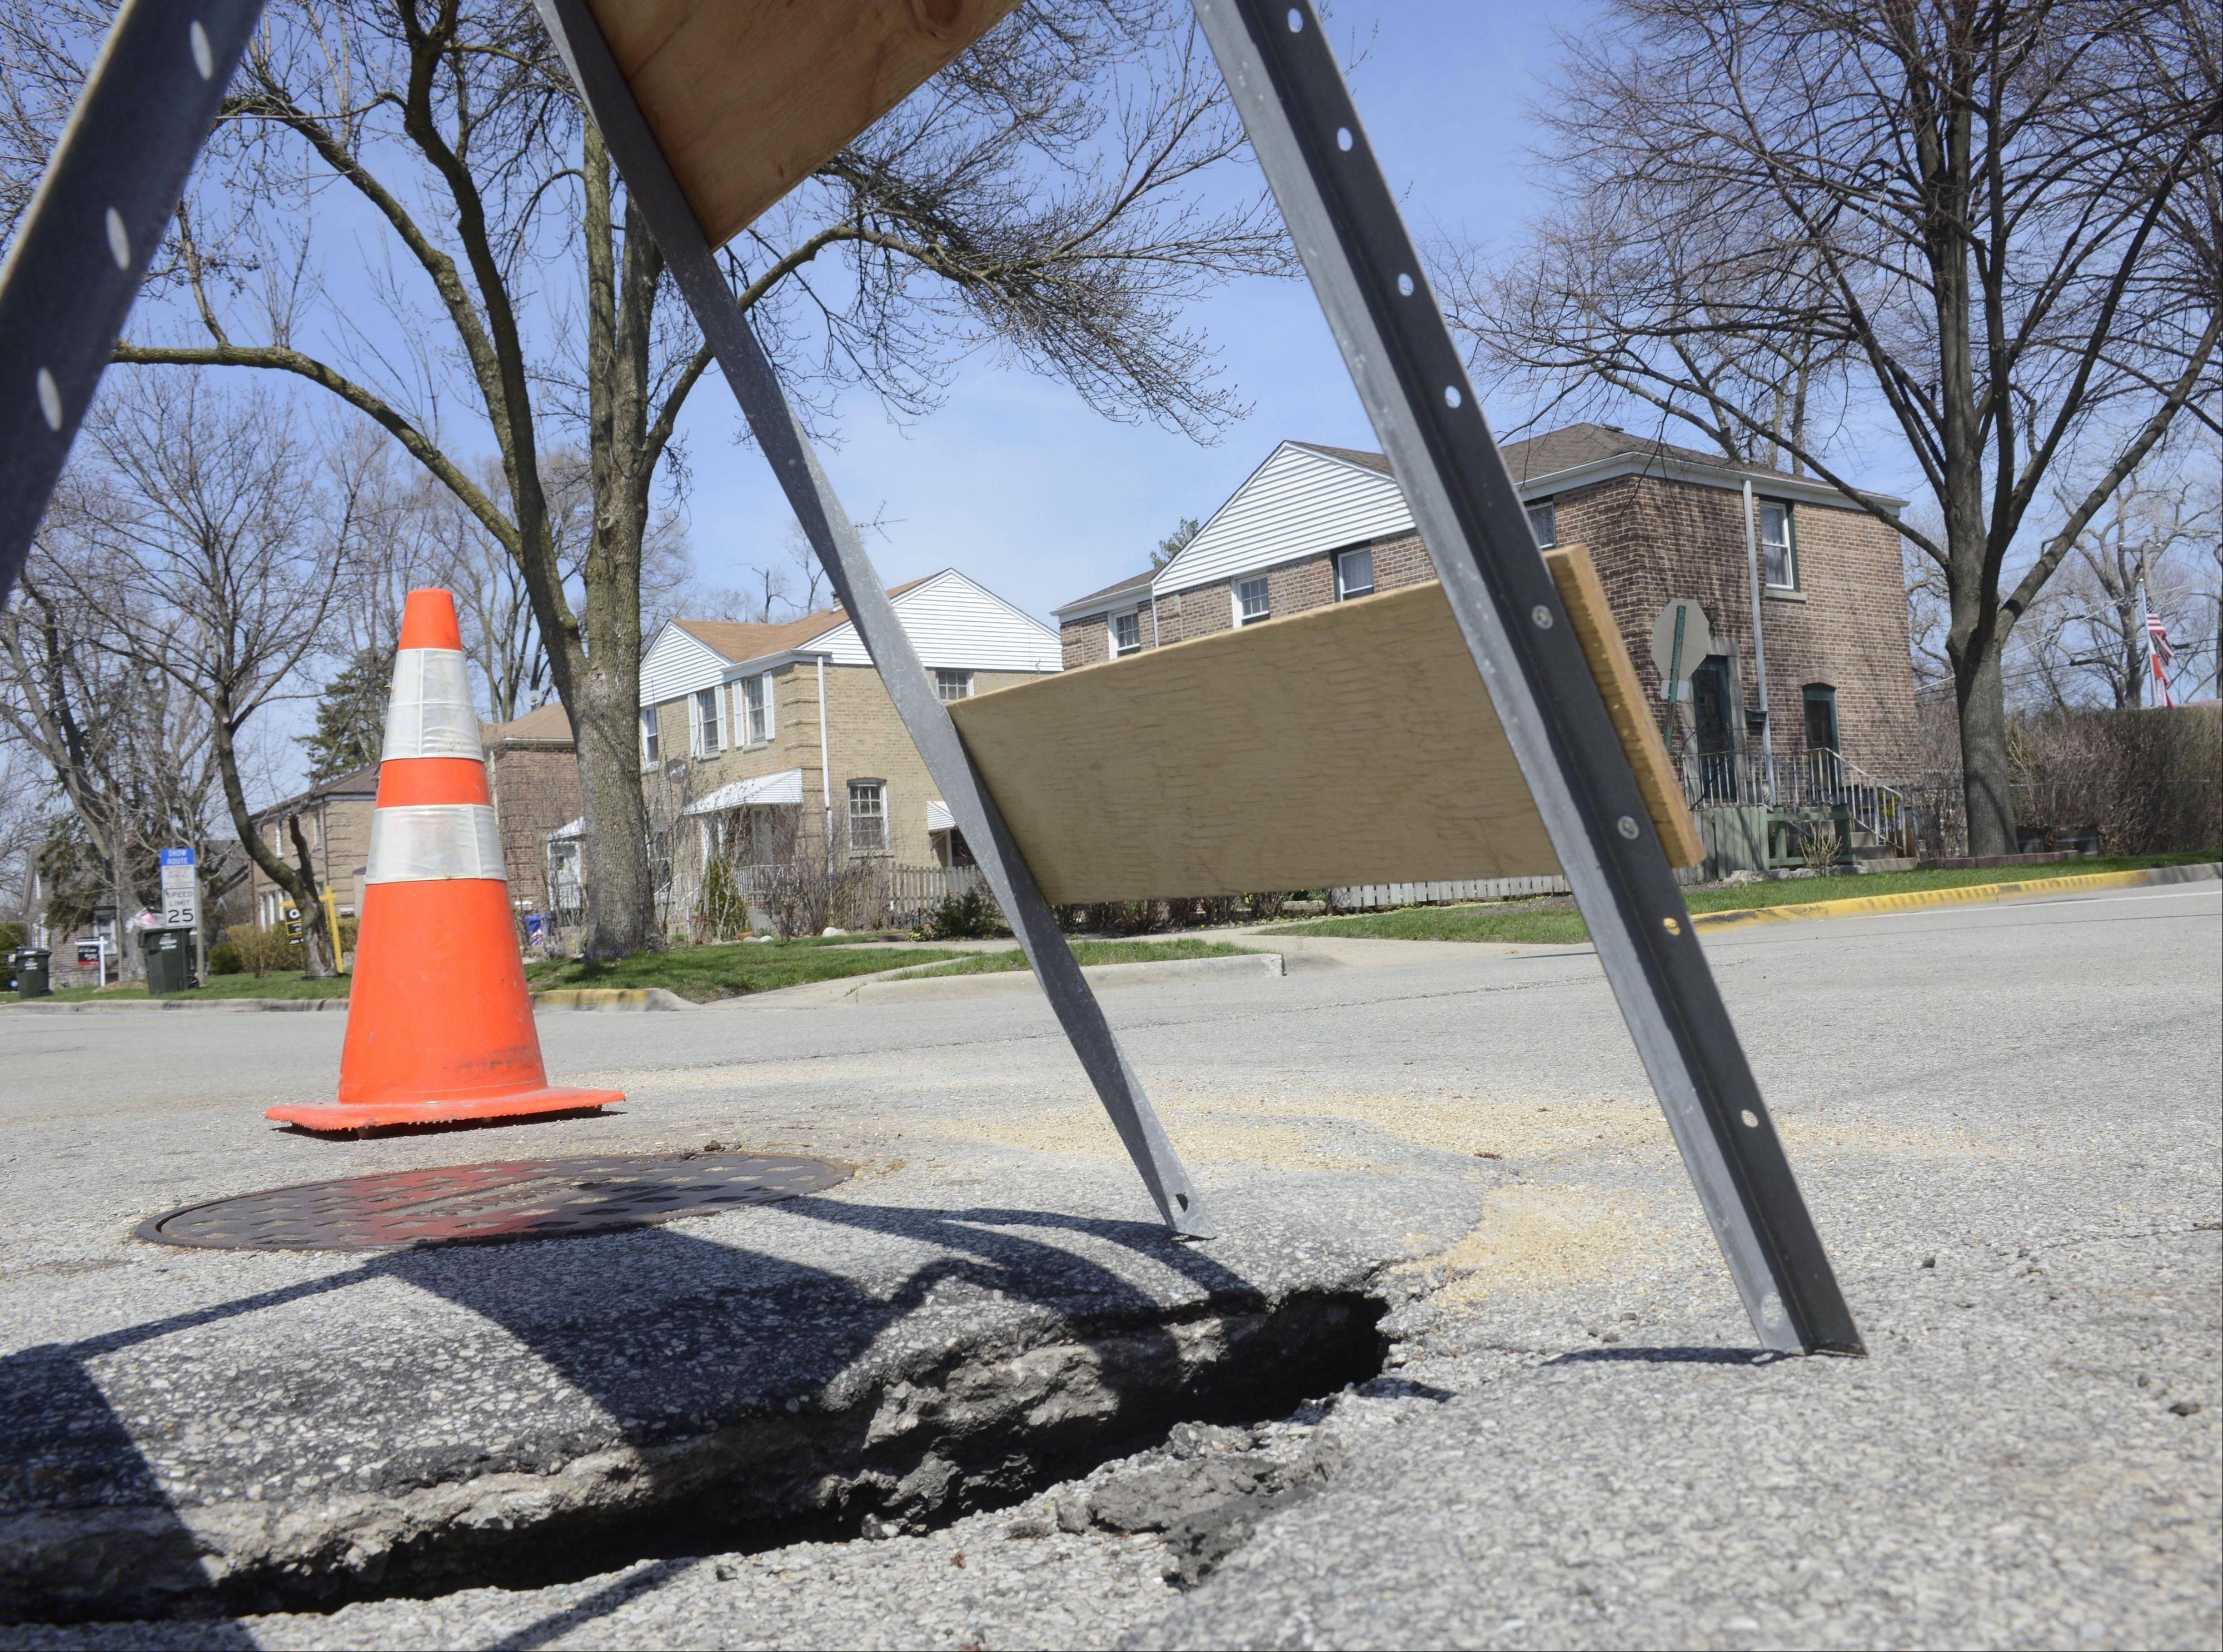 The pavement around a manhole cover is sinking at the intersection of Riverview Avenue and White Street in Des Plaines.